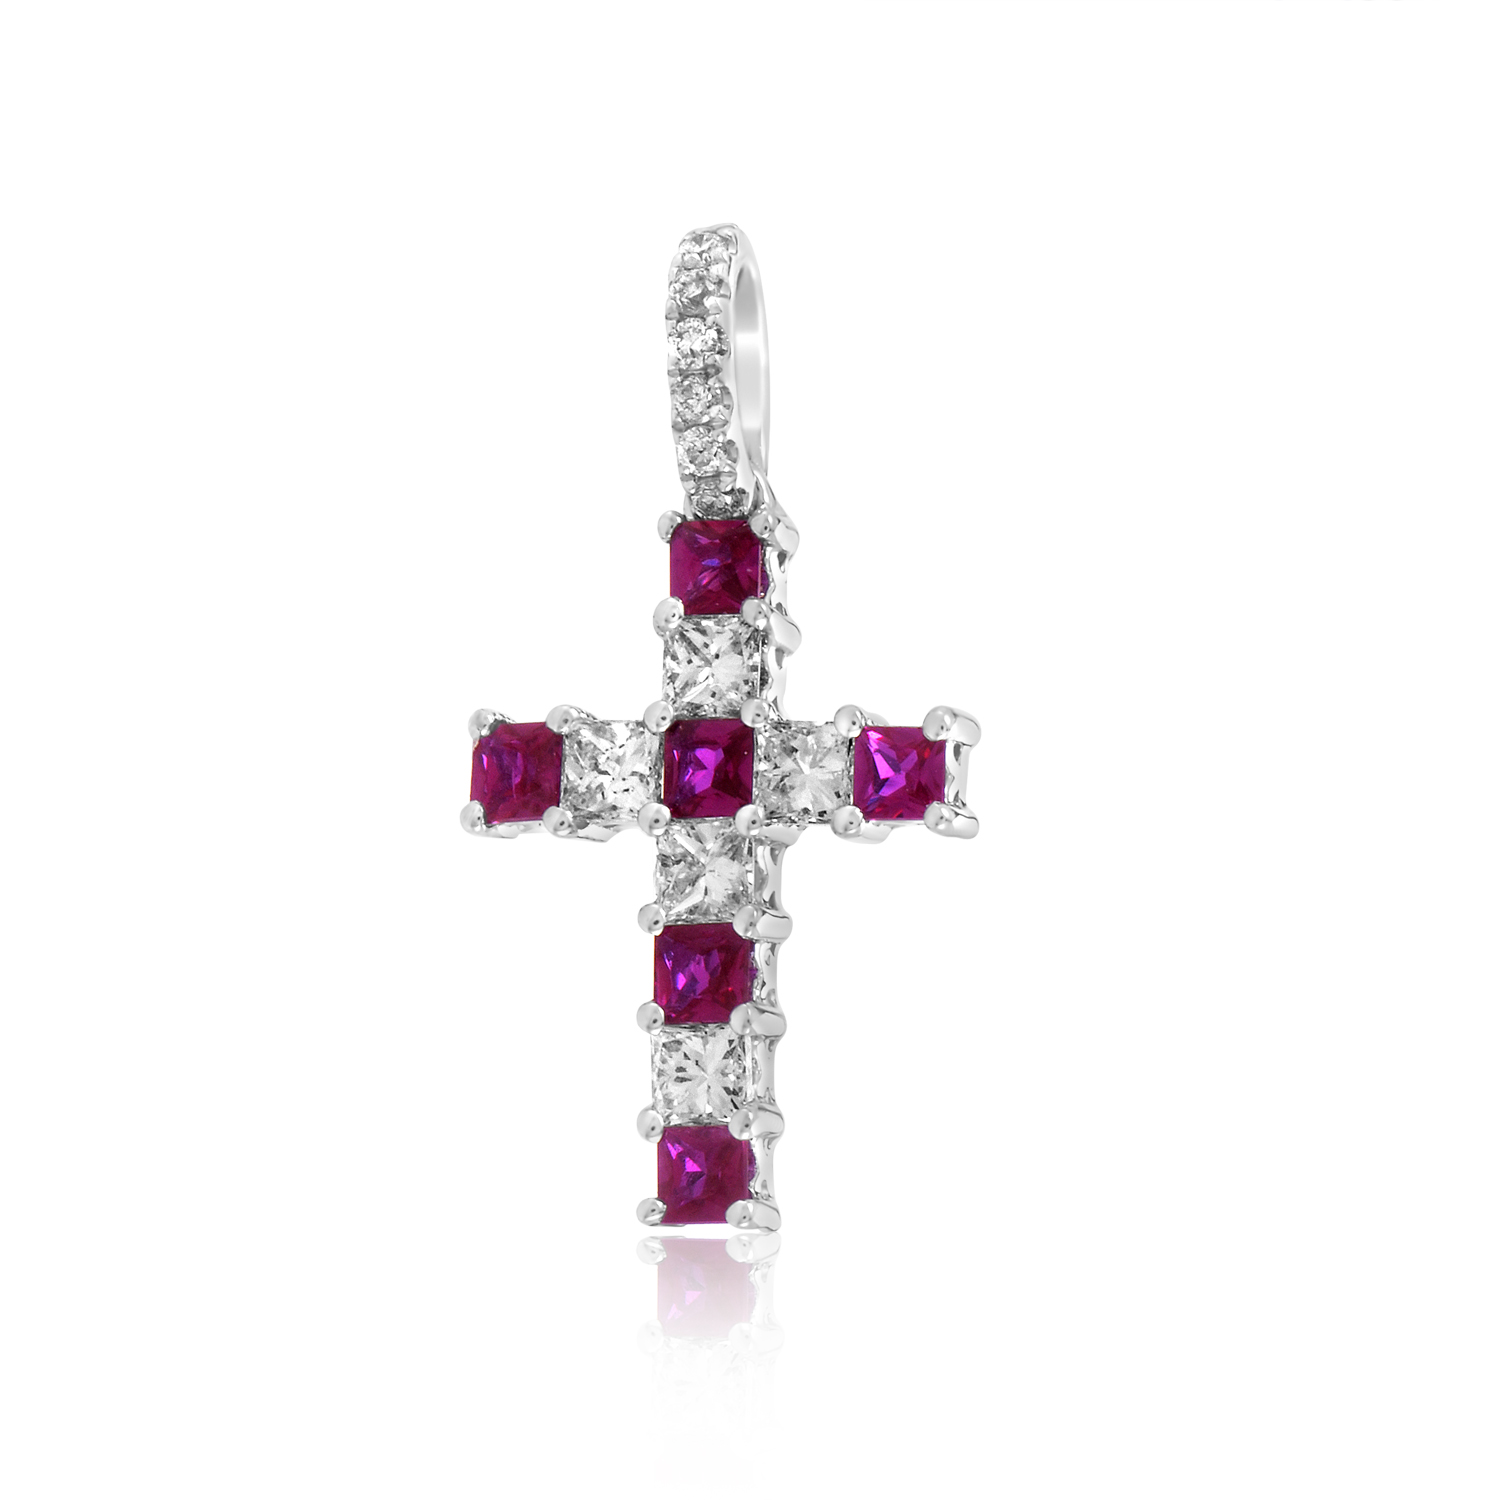 18K White Gold Diamond & Ruby Cross Pendant PAUR64801BZRU